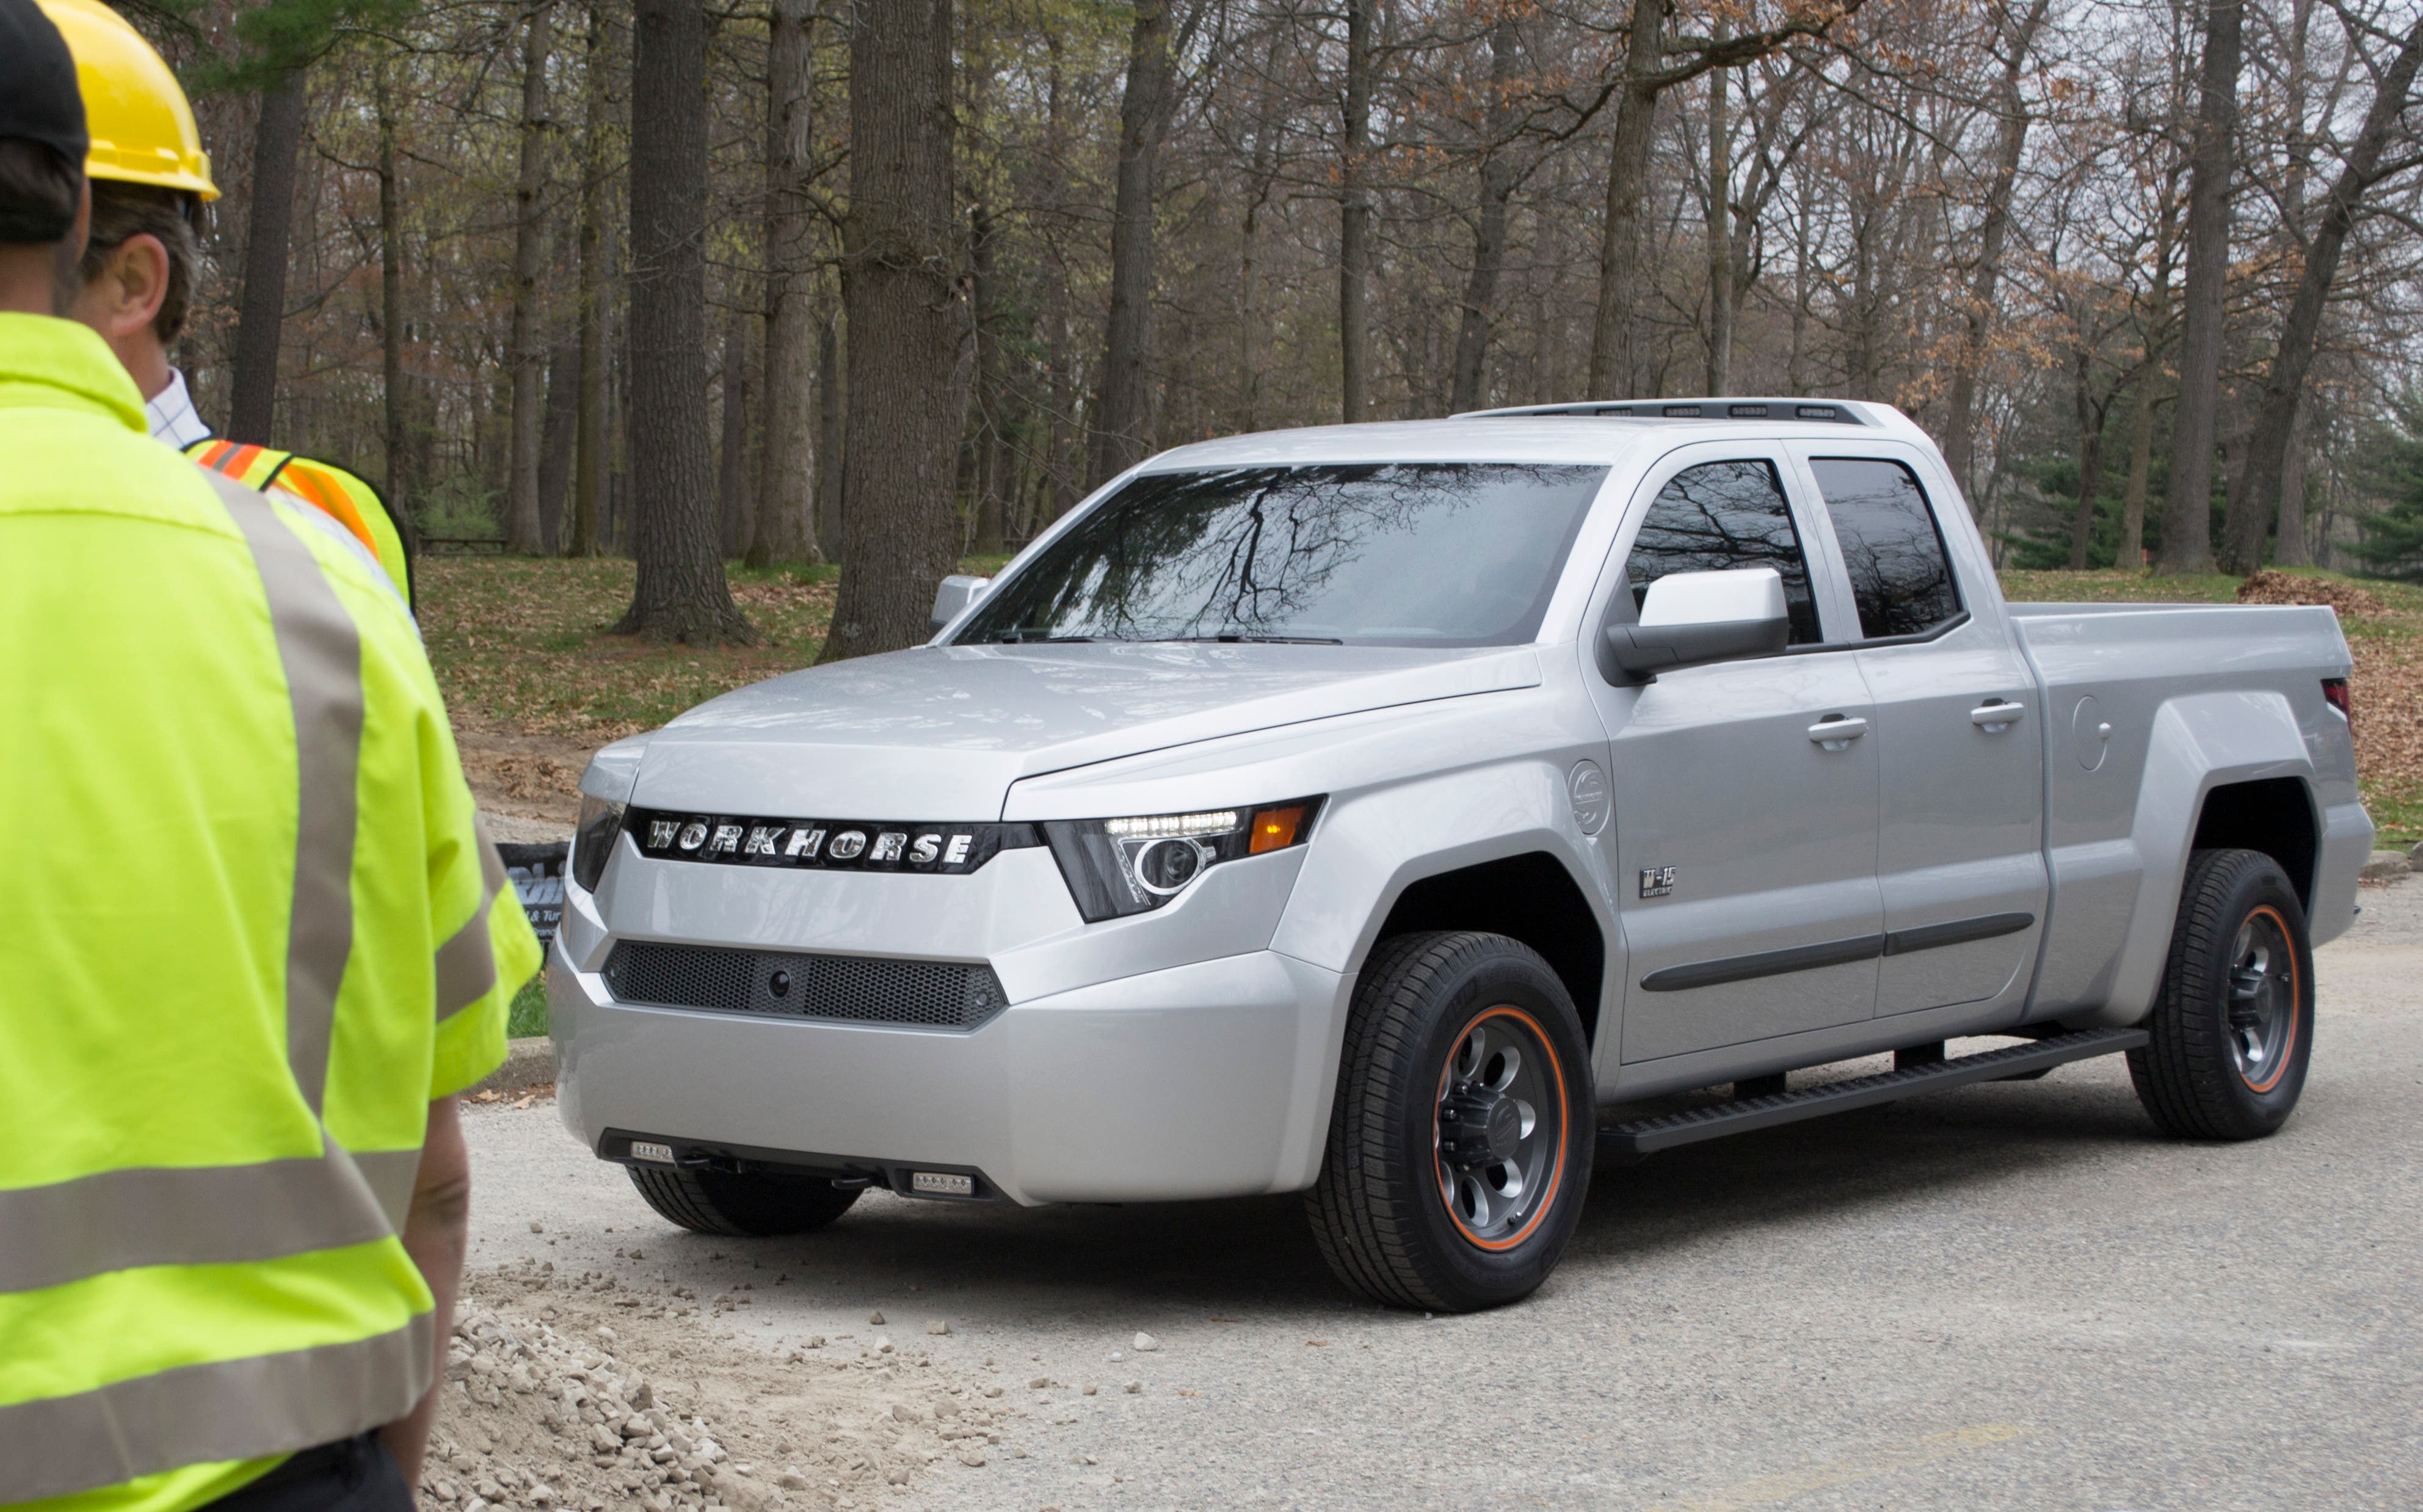 The Electric Truck Has 80 Miles Of All Range Aer Paired With A Gasoline Ed Bmw Extender To Enable Total 390 On Full